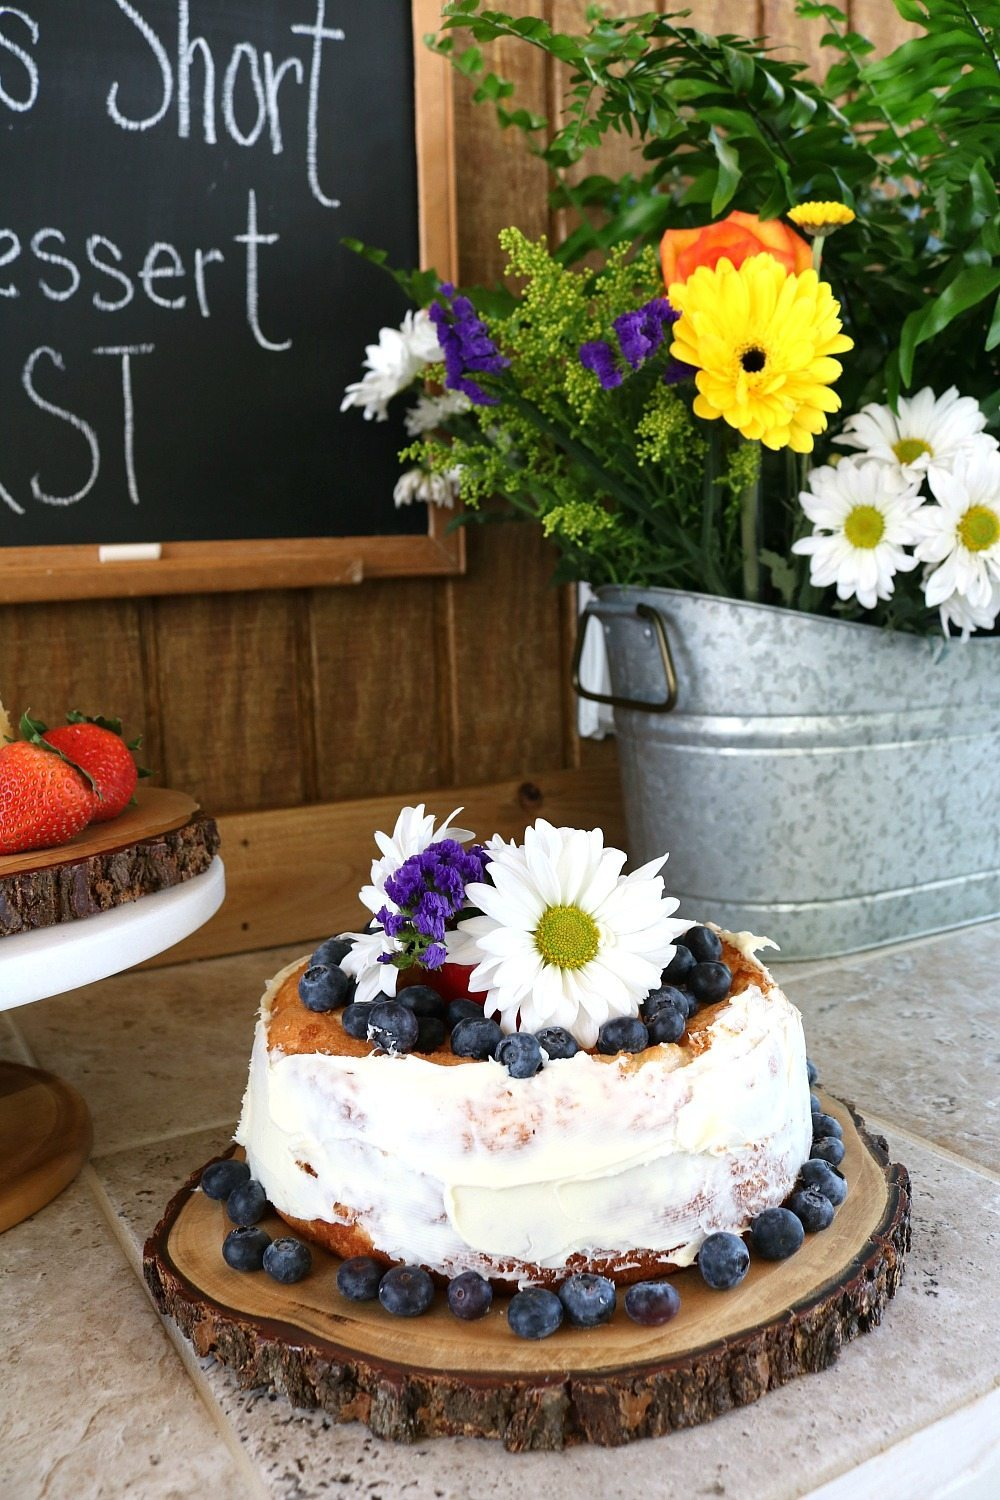 Farmhouse desserts served on wood slices with flowers in galvanized tub